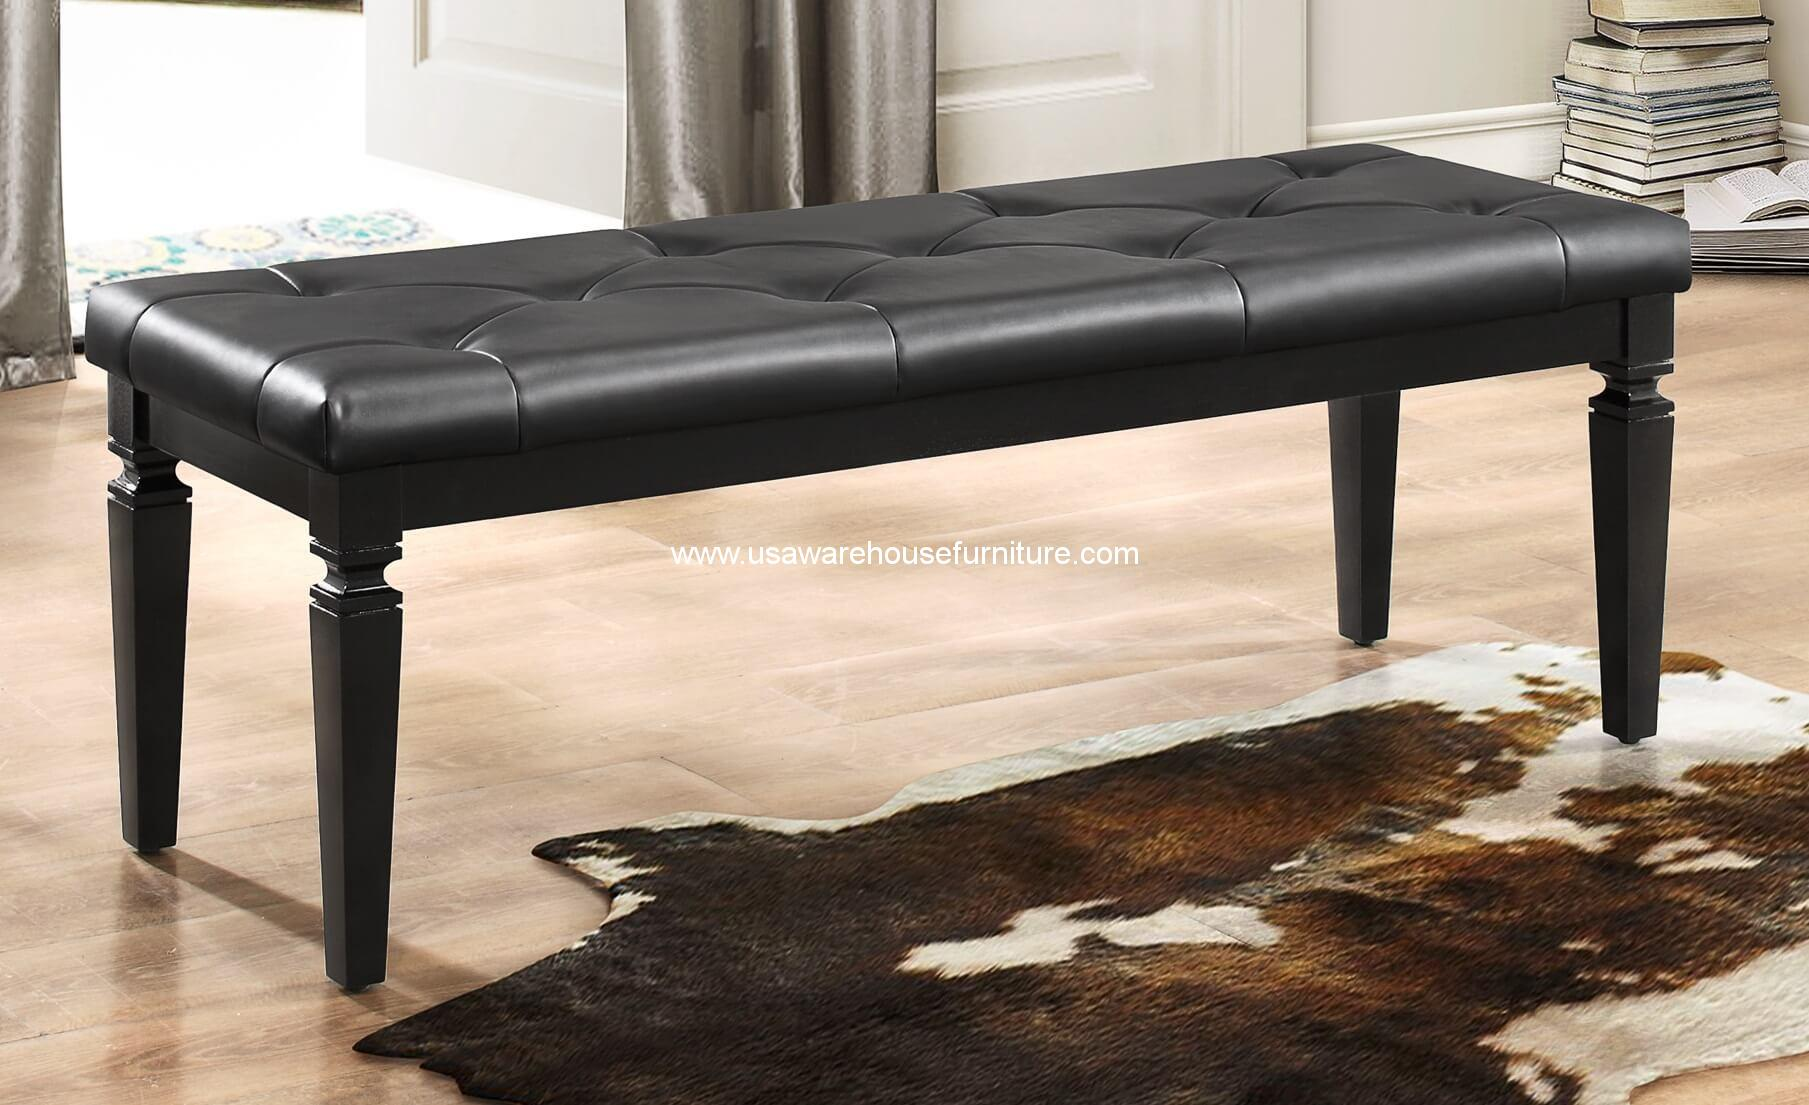 Allura Bed Bench Usa Warehouse Furniture